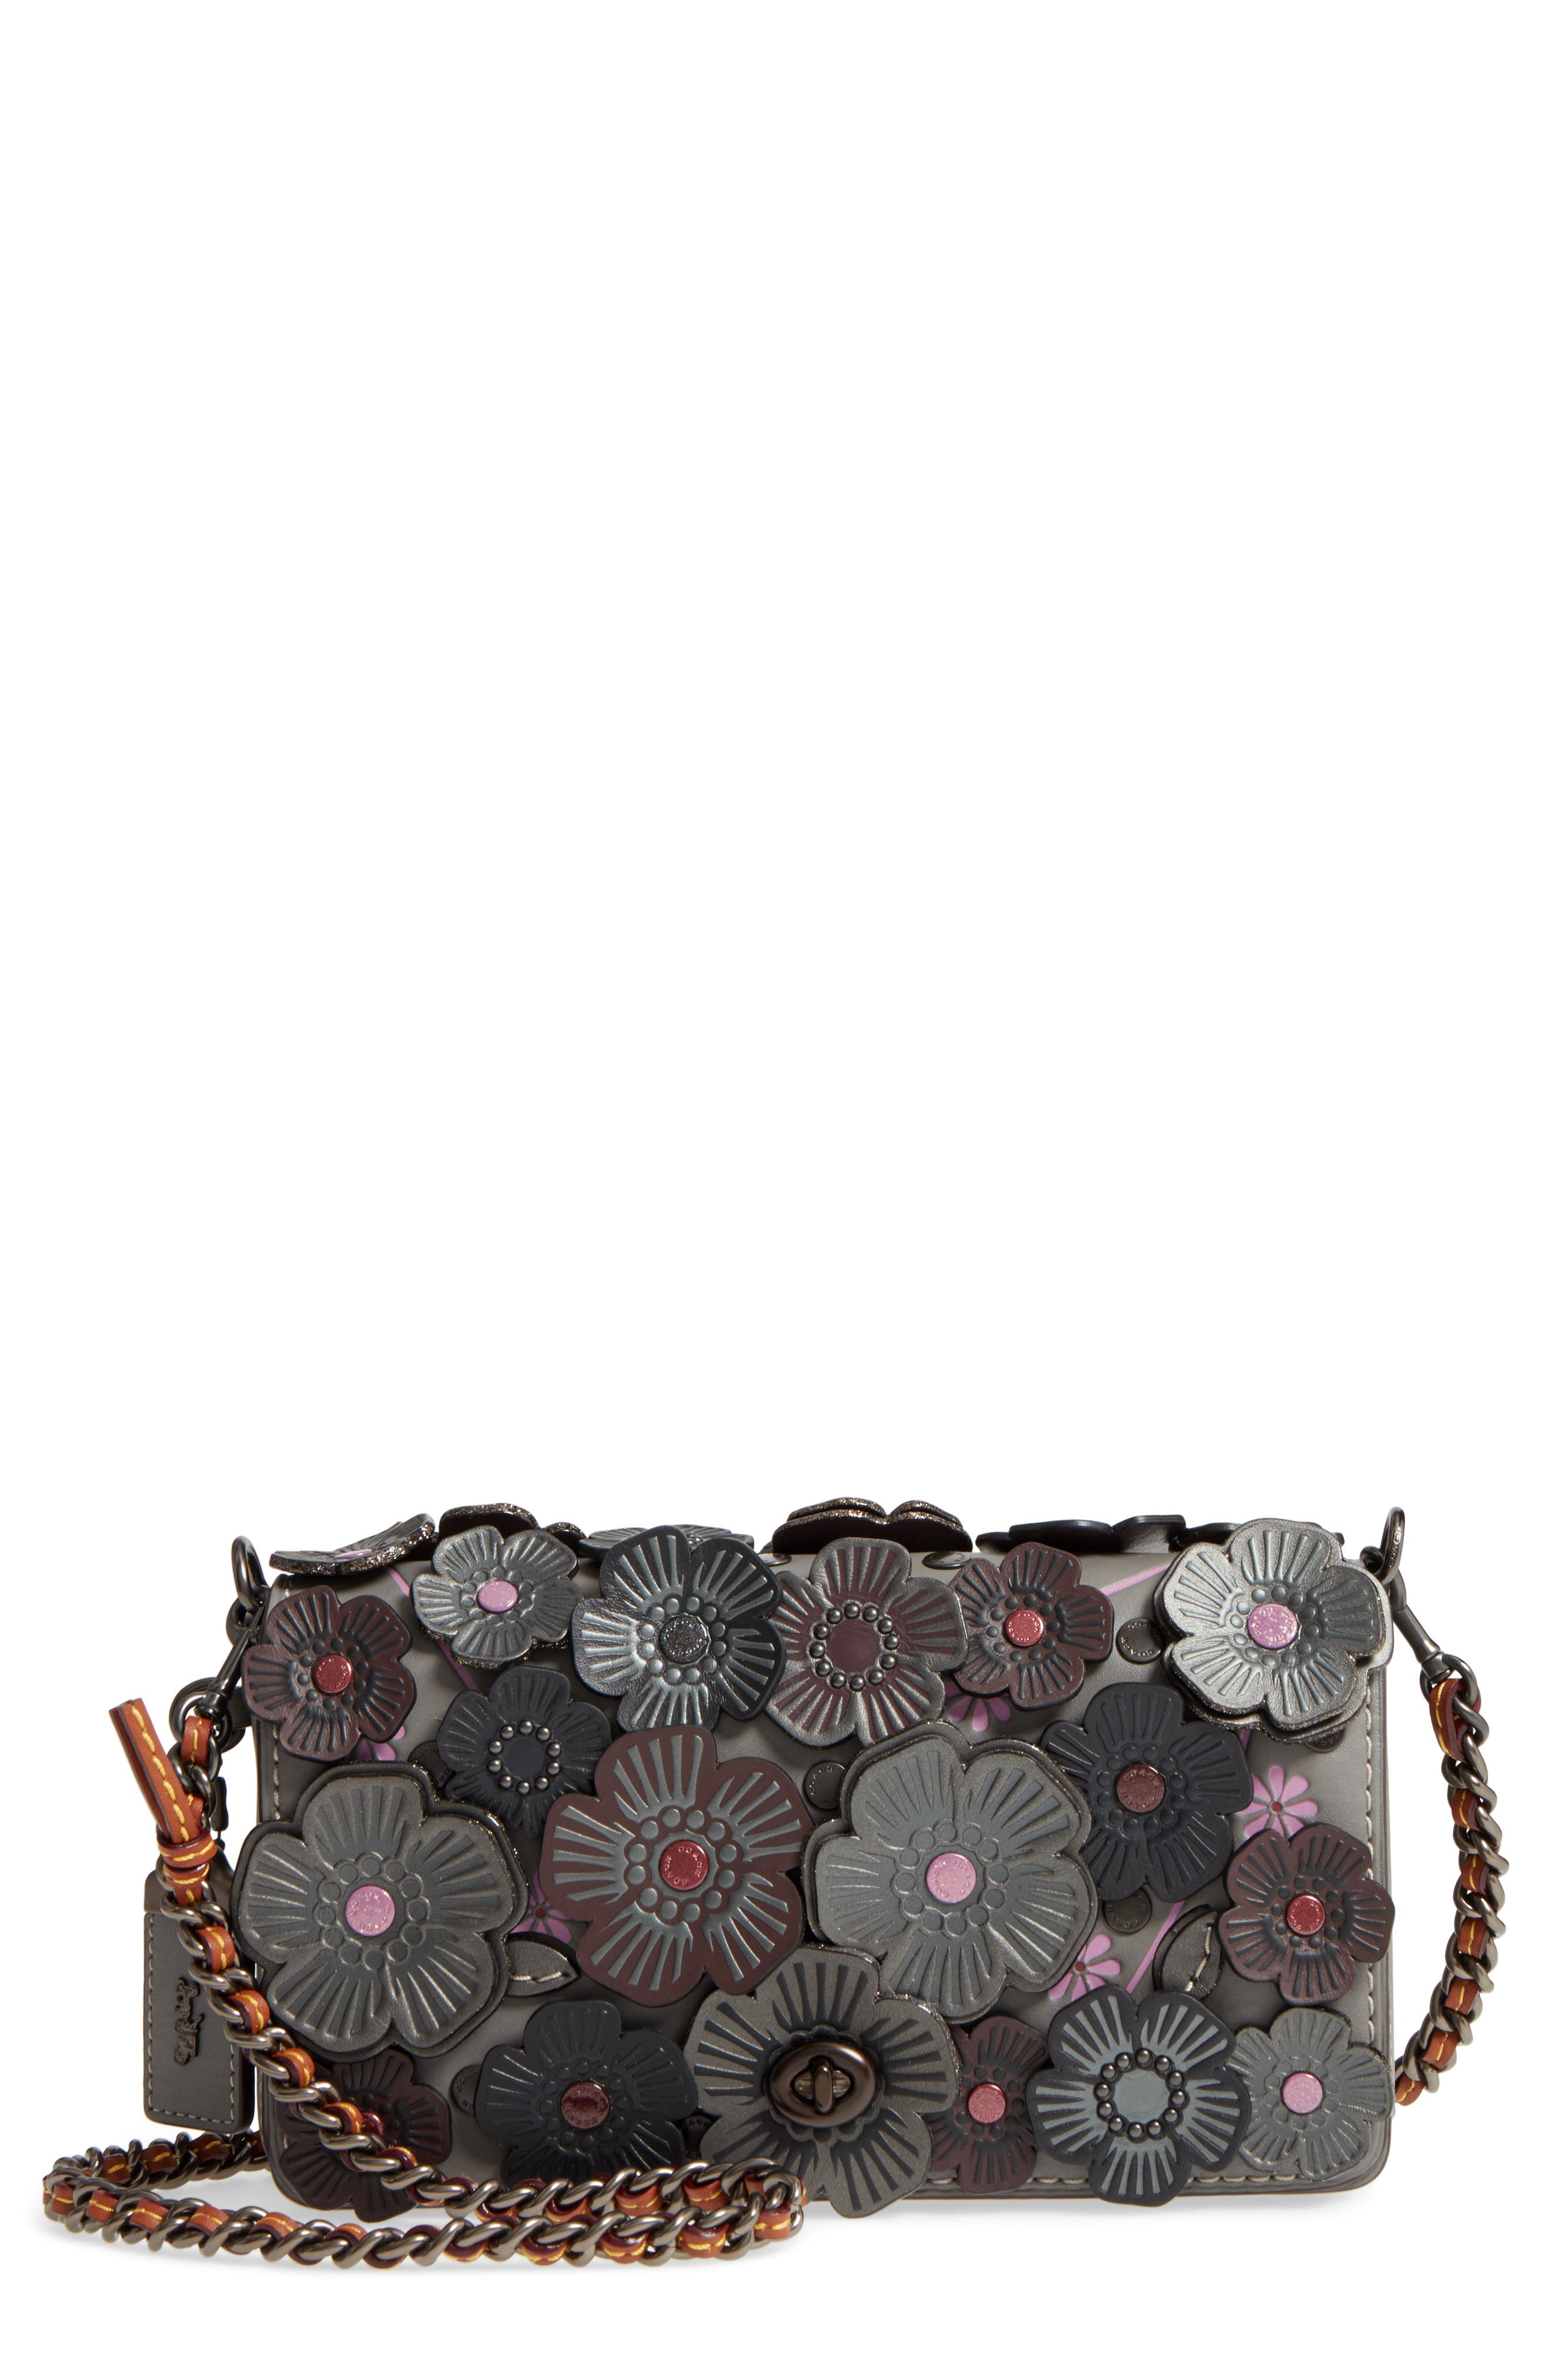 COACH 1941 'Dinky' Flower Appliqué Leather Crossbody Bag